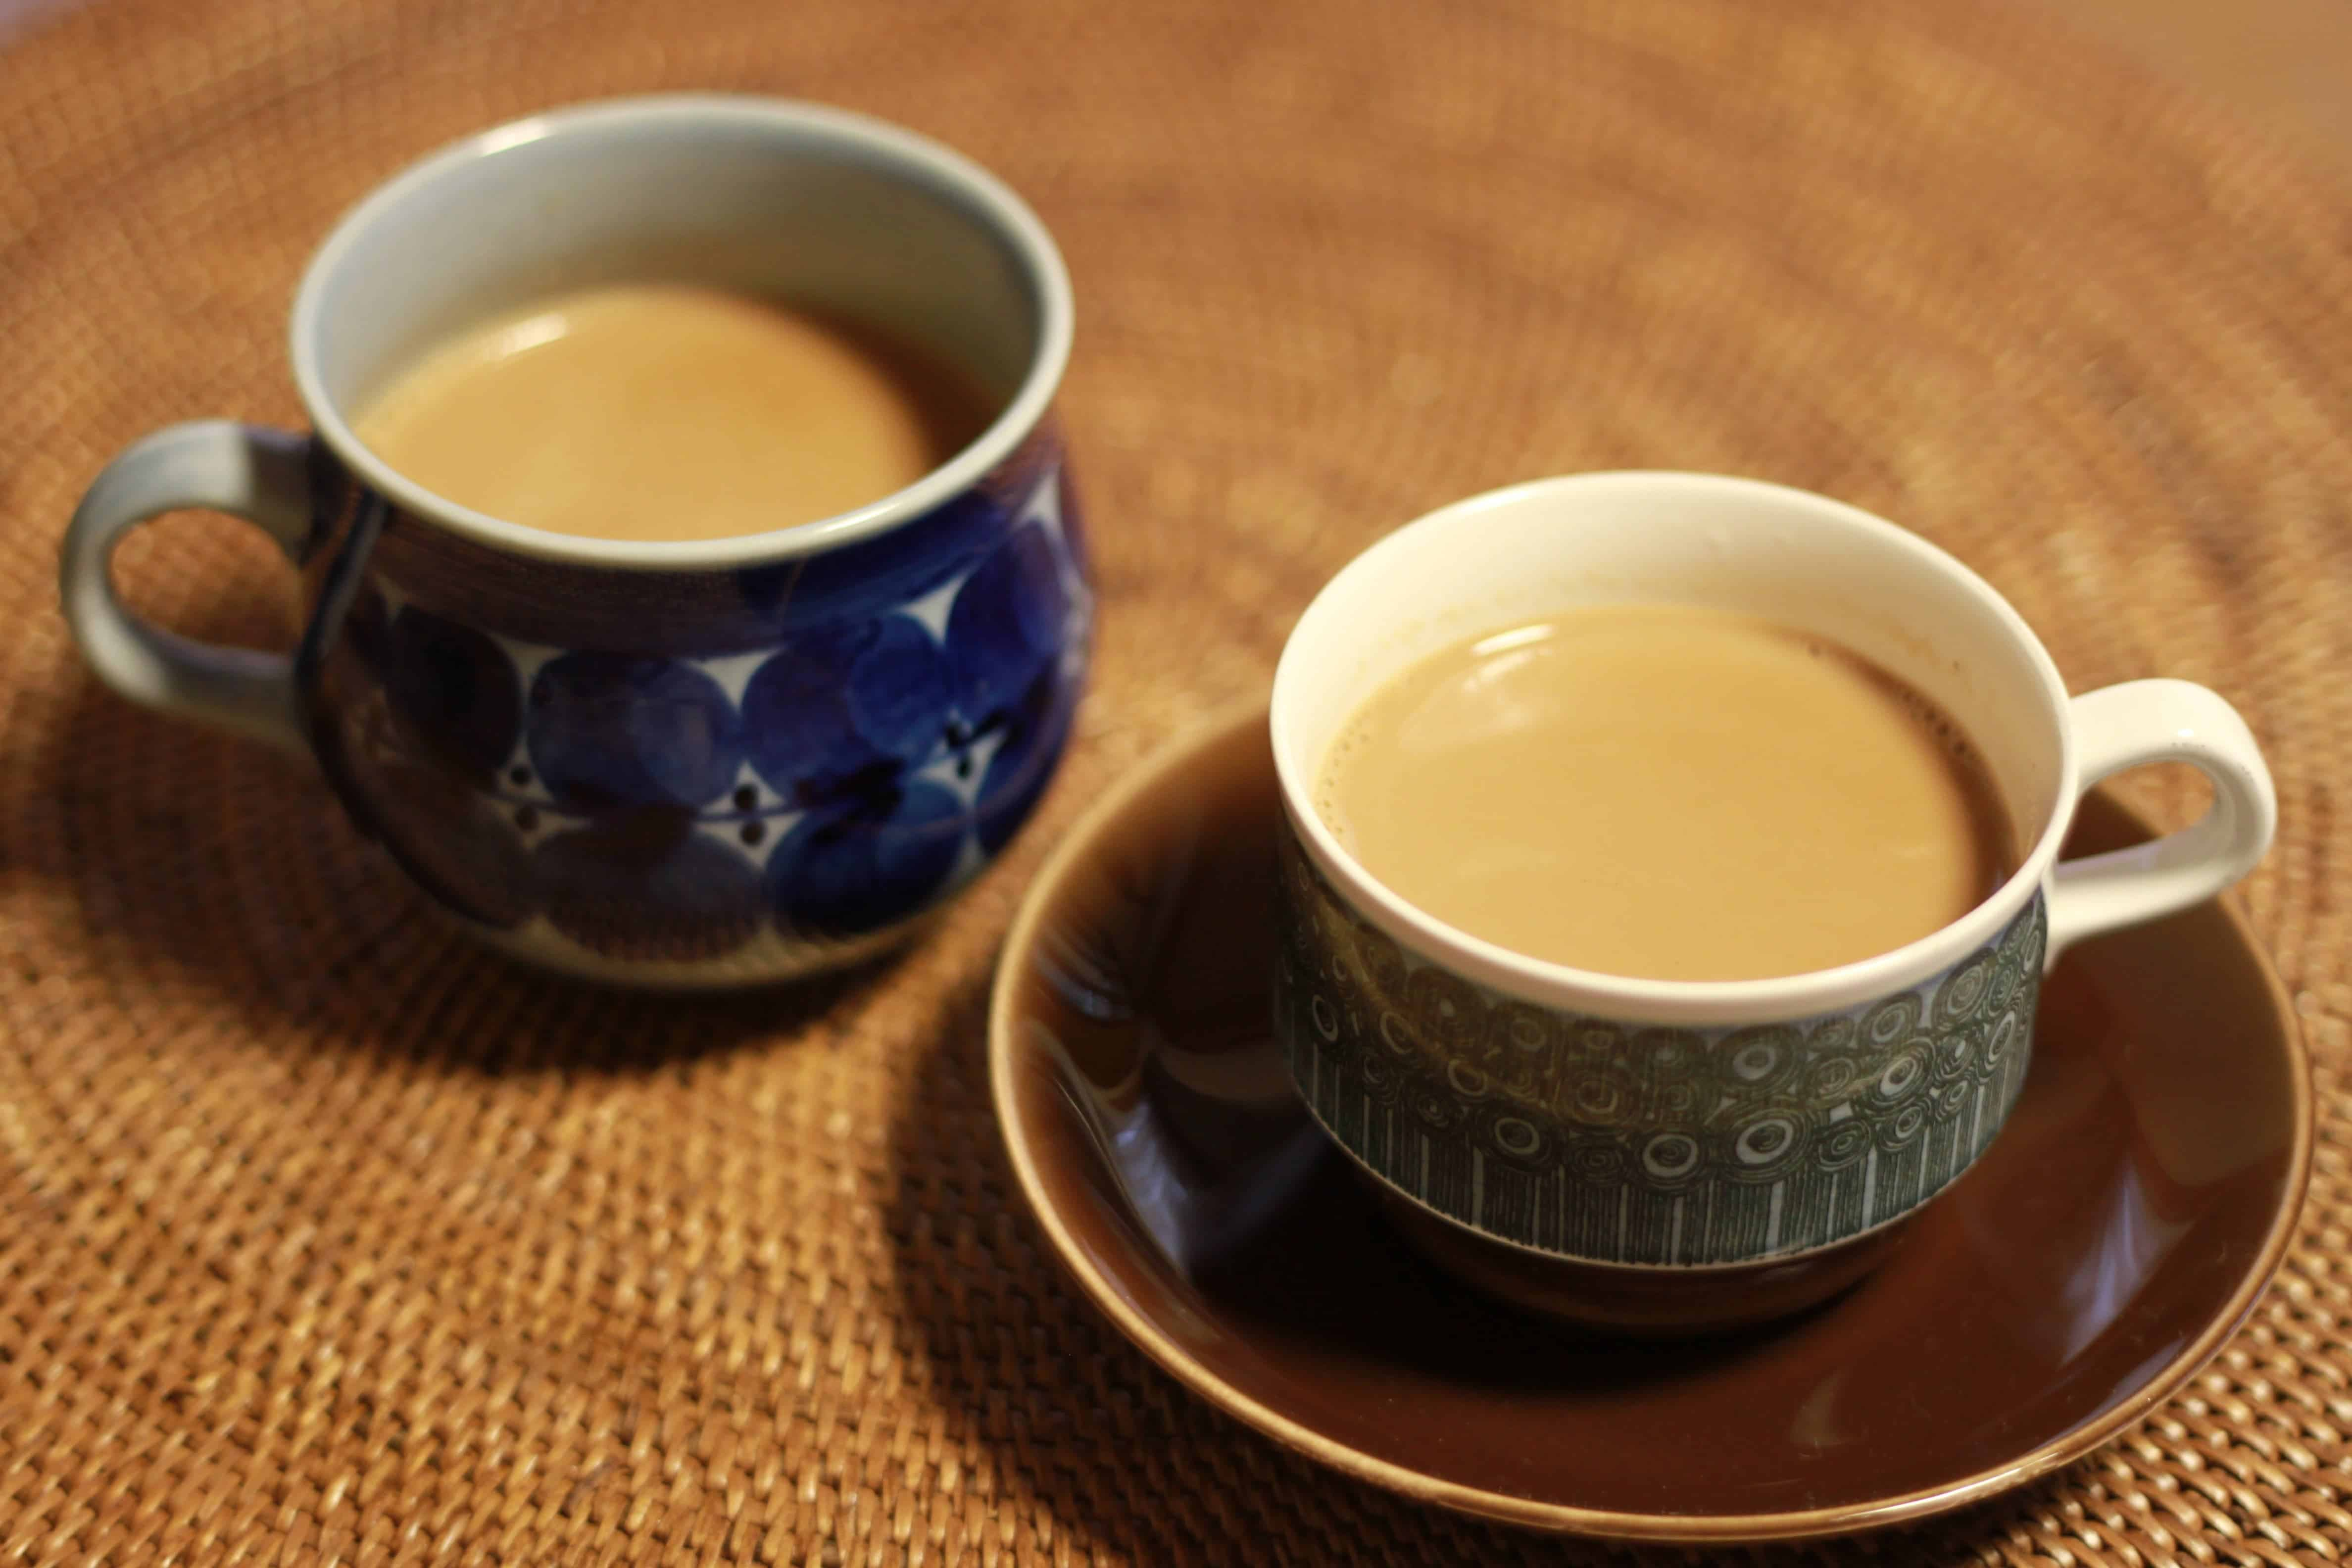 Whether we are tea or coffee drinkers likely decided by genes